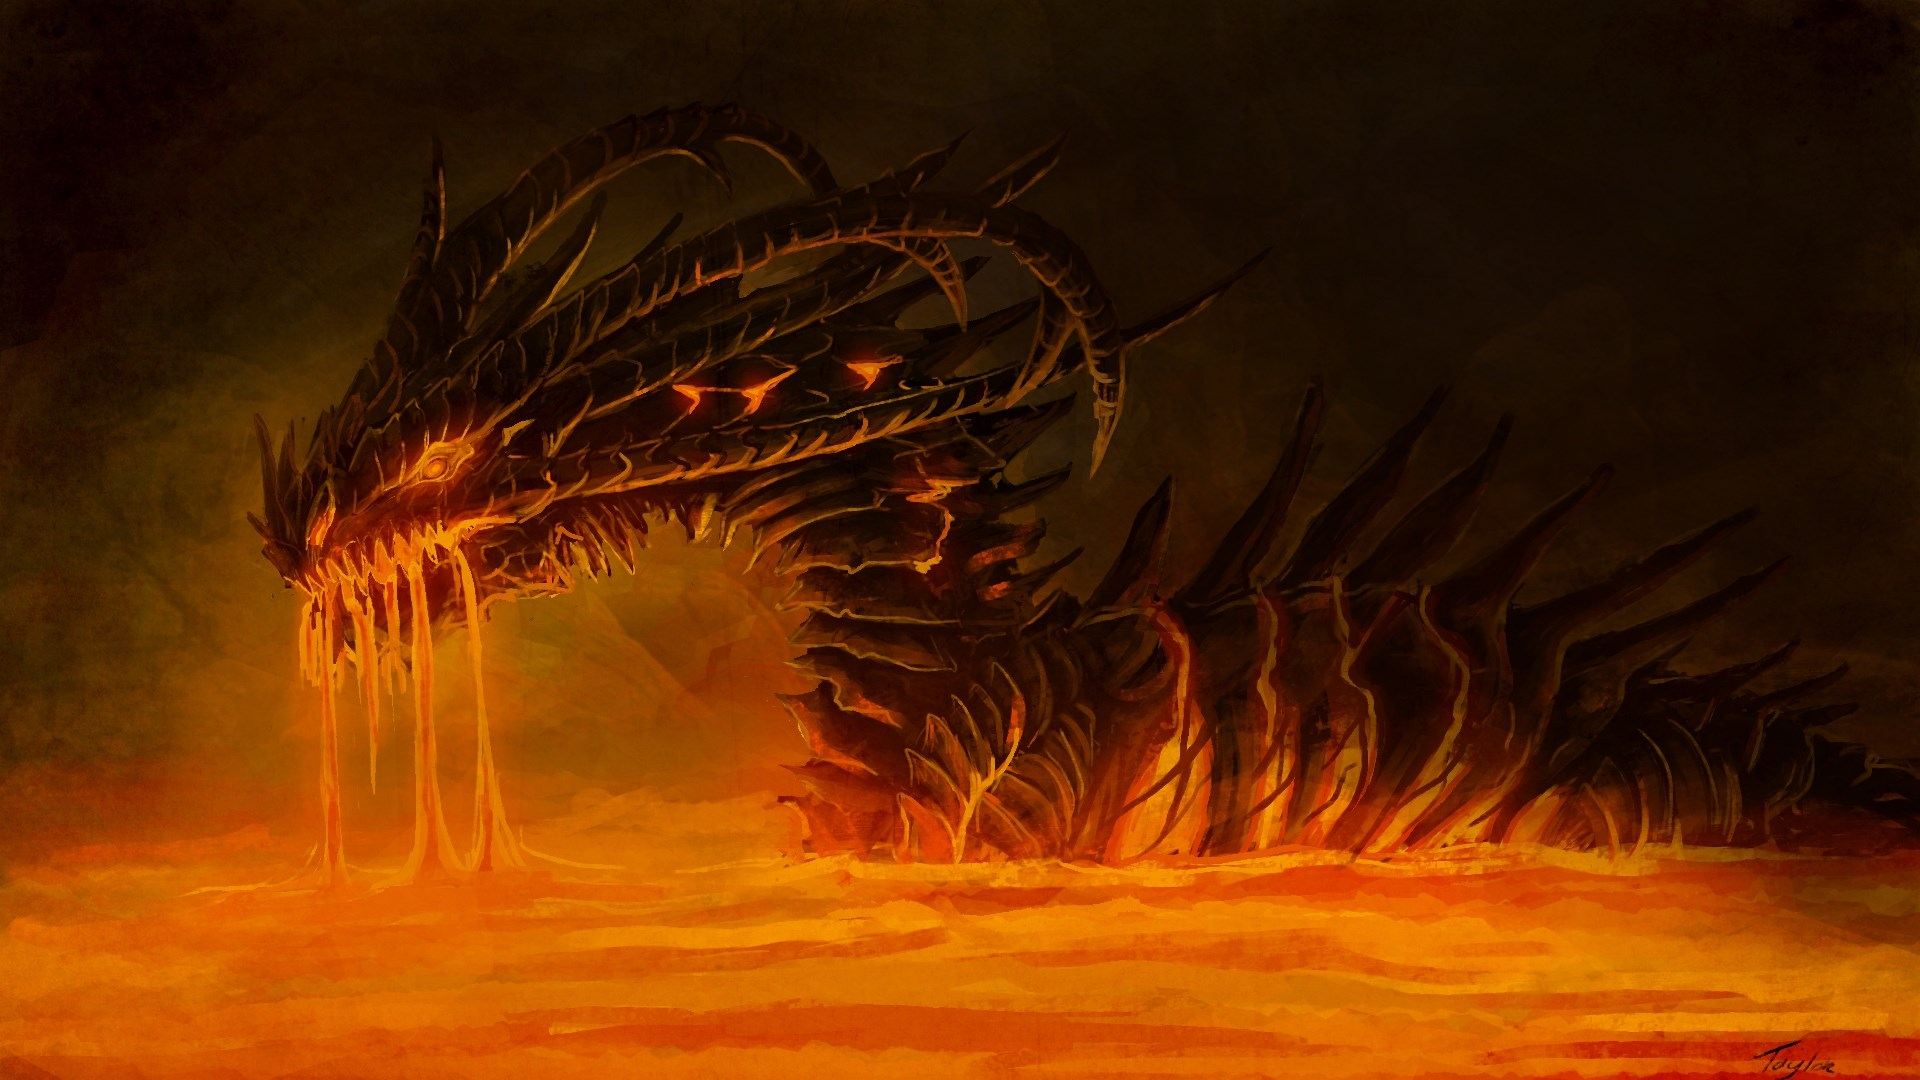 dragon-hd-1080p-windows-wallpaper-wp3804884